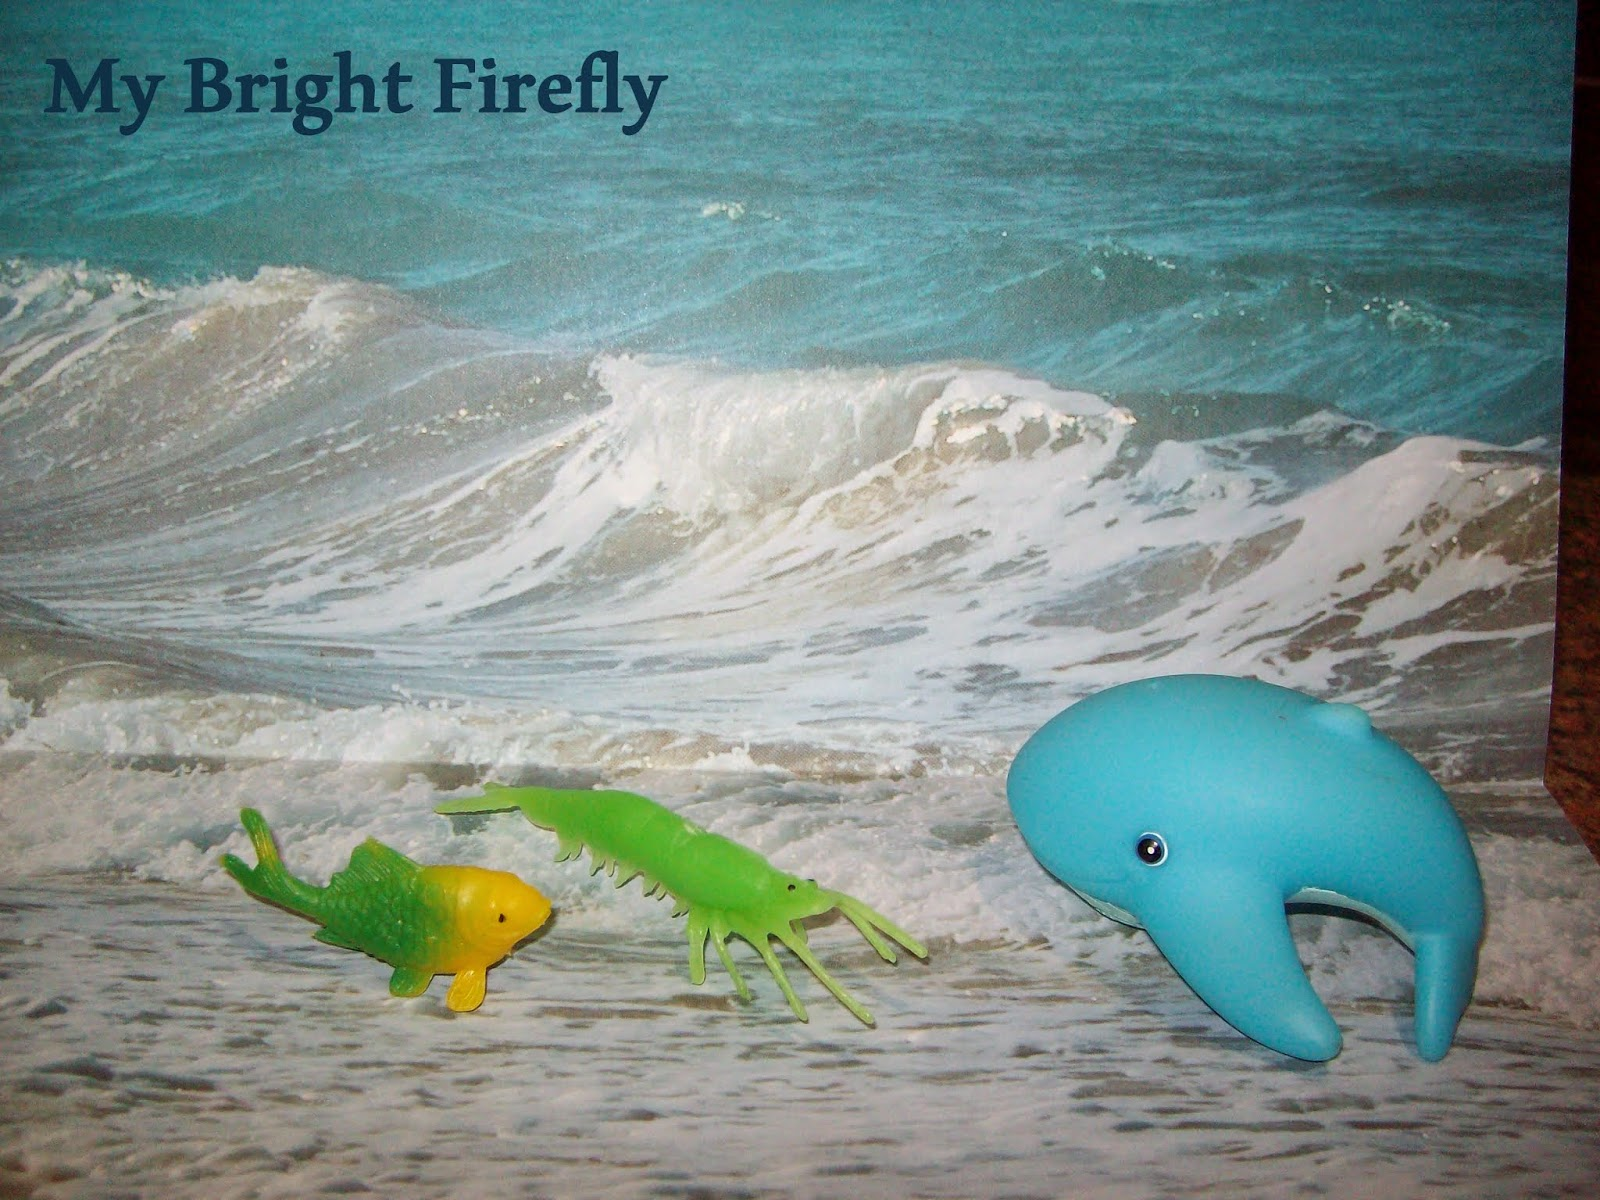 My bright firefly rainbow fish crafts and play for toddlers for Rainbow fish and the big blue whale